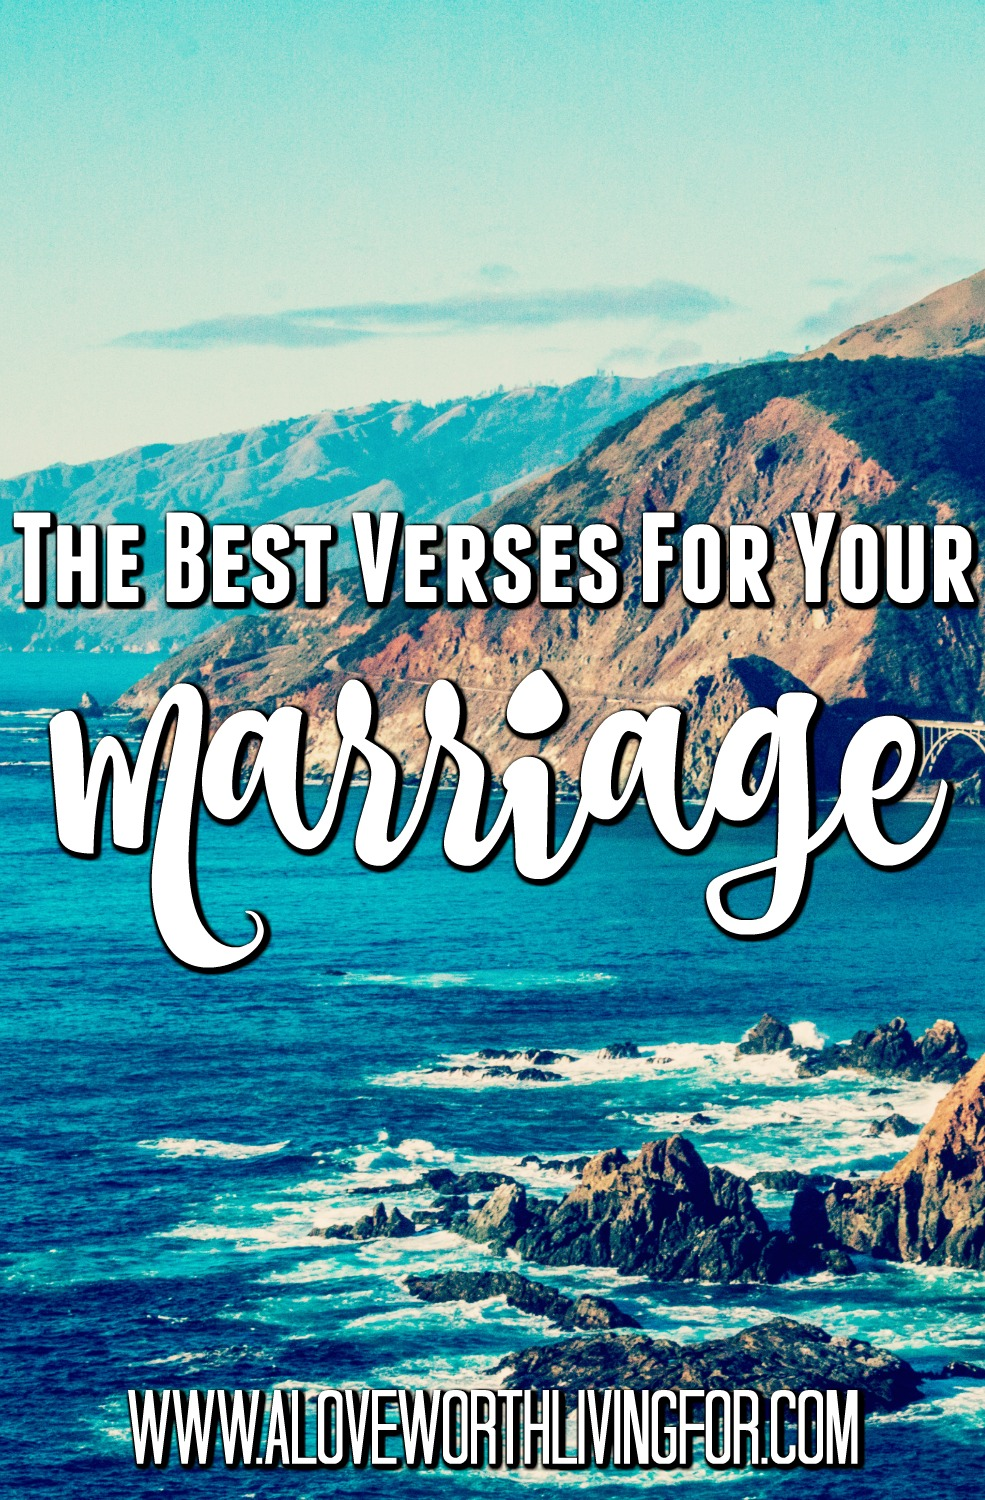 I know marriage isn't always easy, but we always have a very present source of help. We all want marriages that are healthy and full of love and respect. Marriages like that can change the culture and inspire awe in the hearts of on lookers. Here are my favorite verses for marriage.